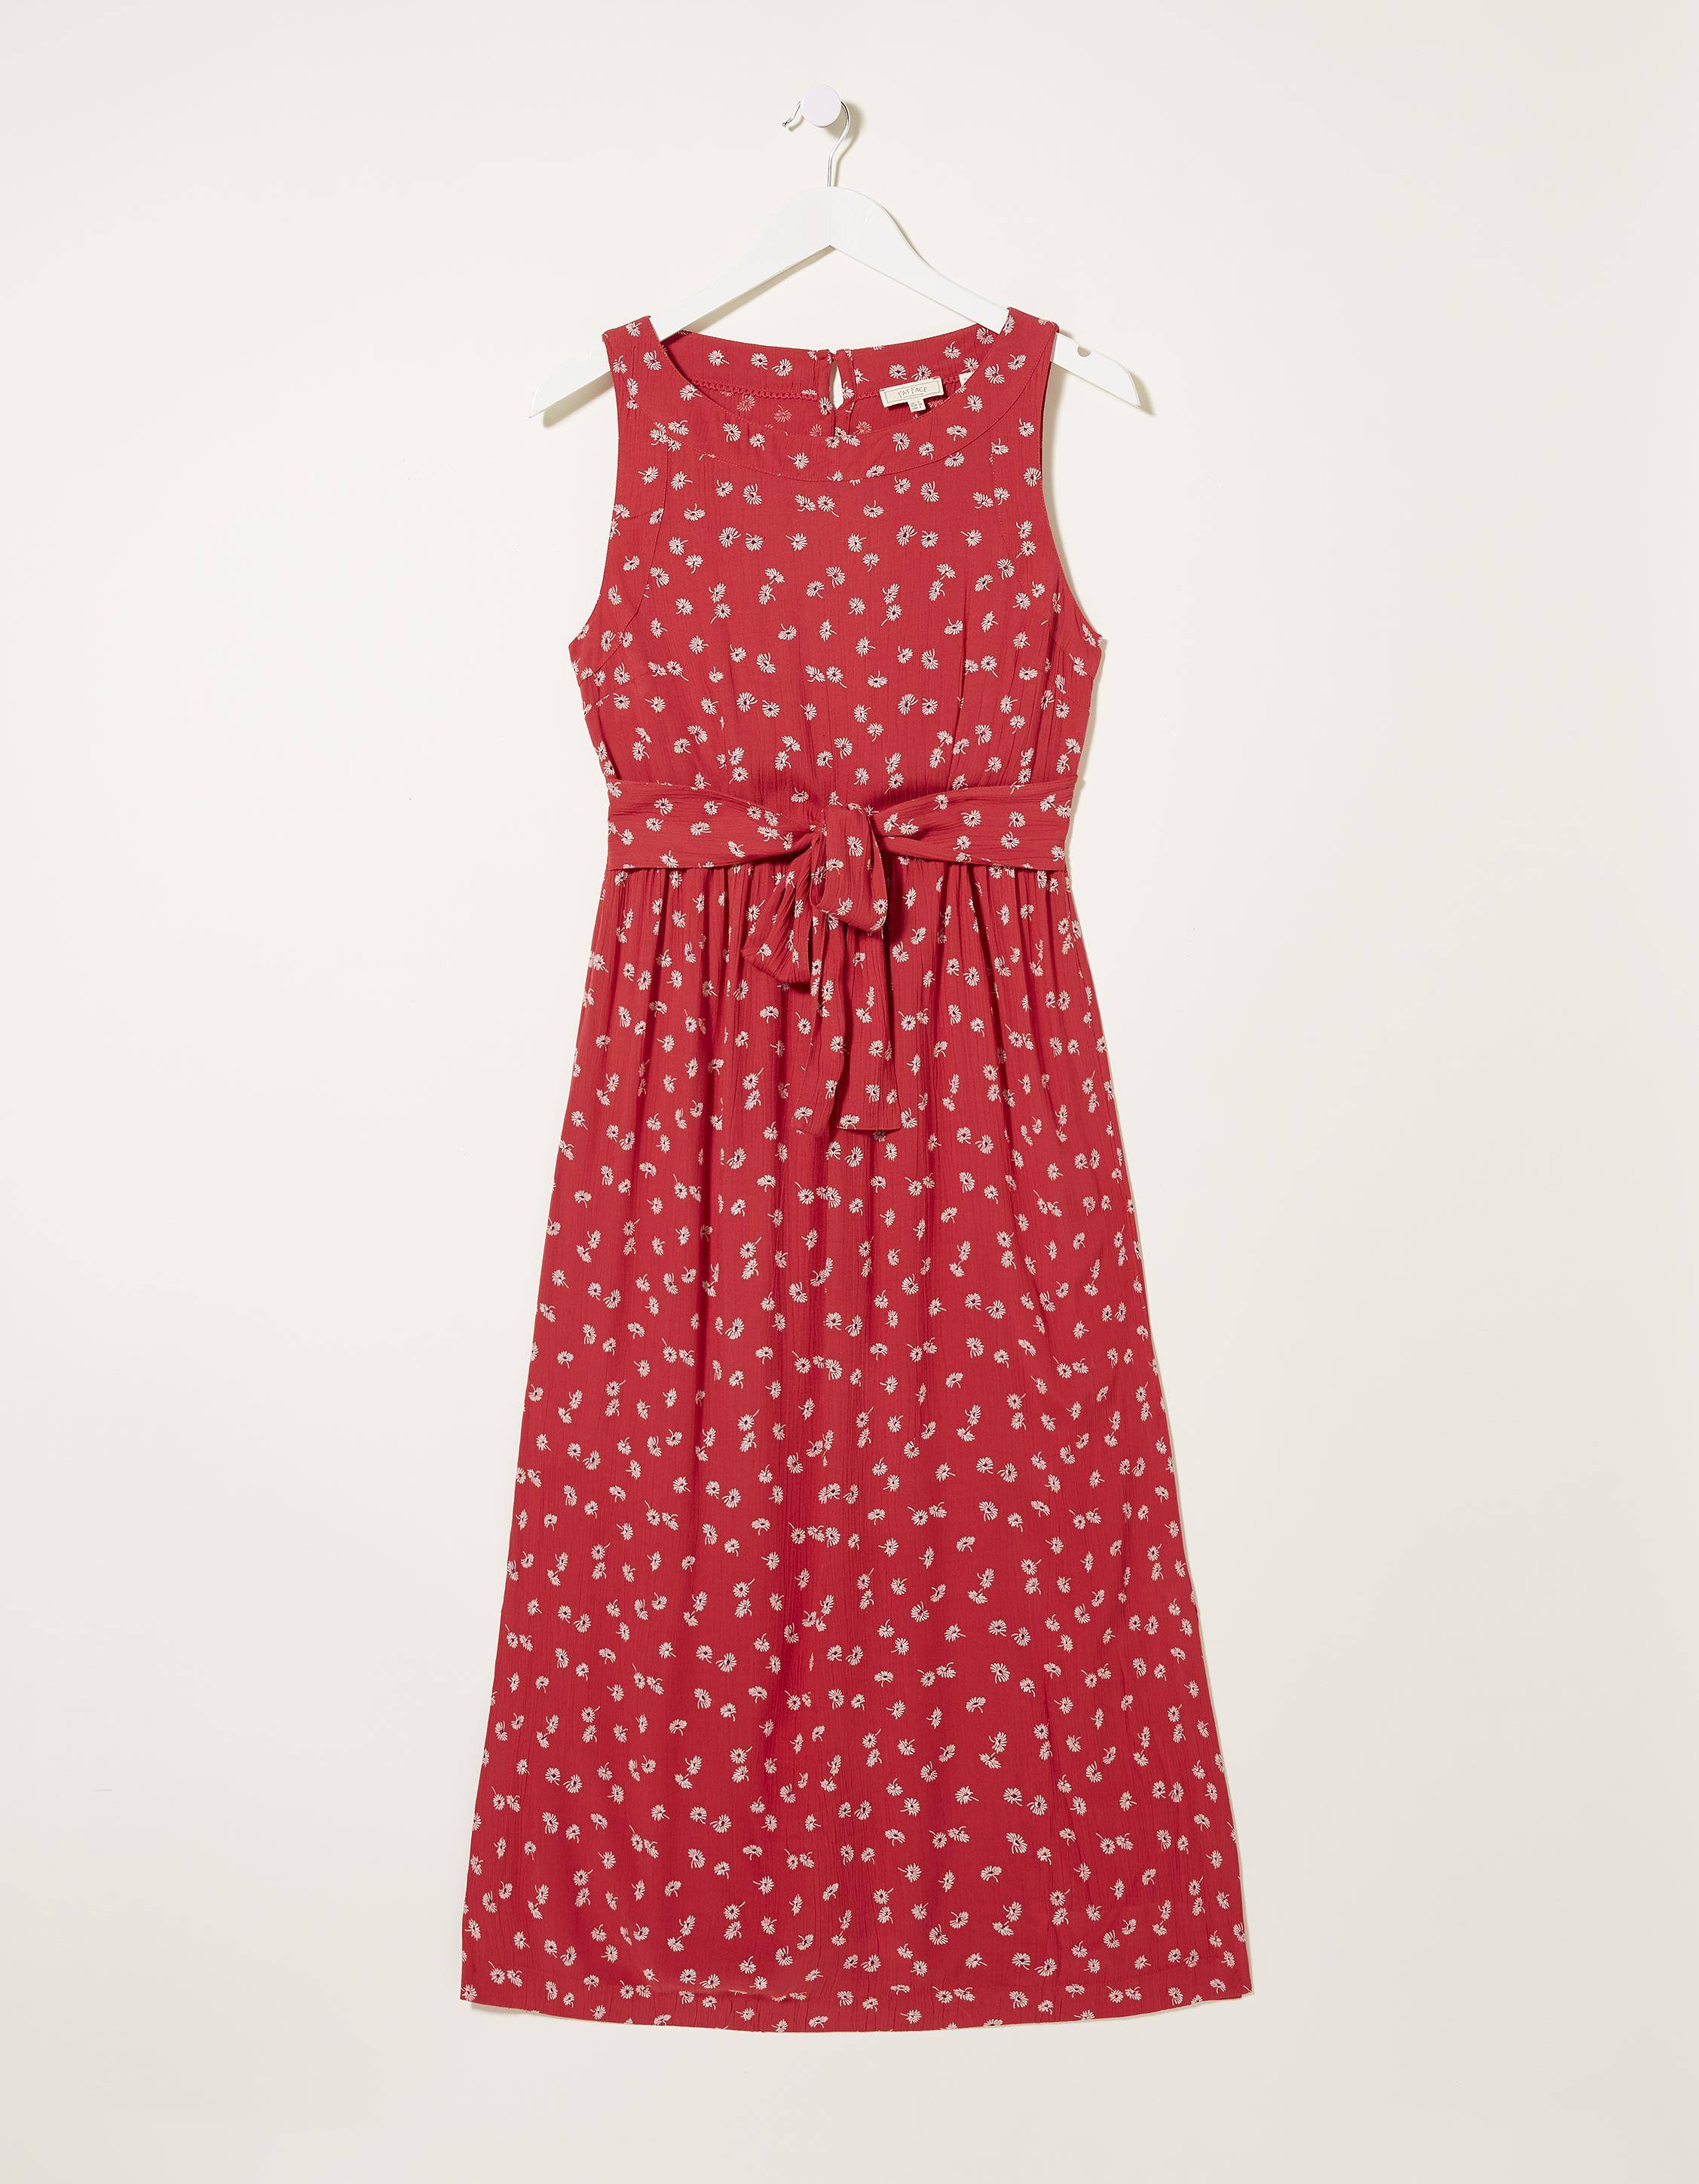 Fat Face Laurie Daisy Midi Dress  - Size: 10